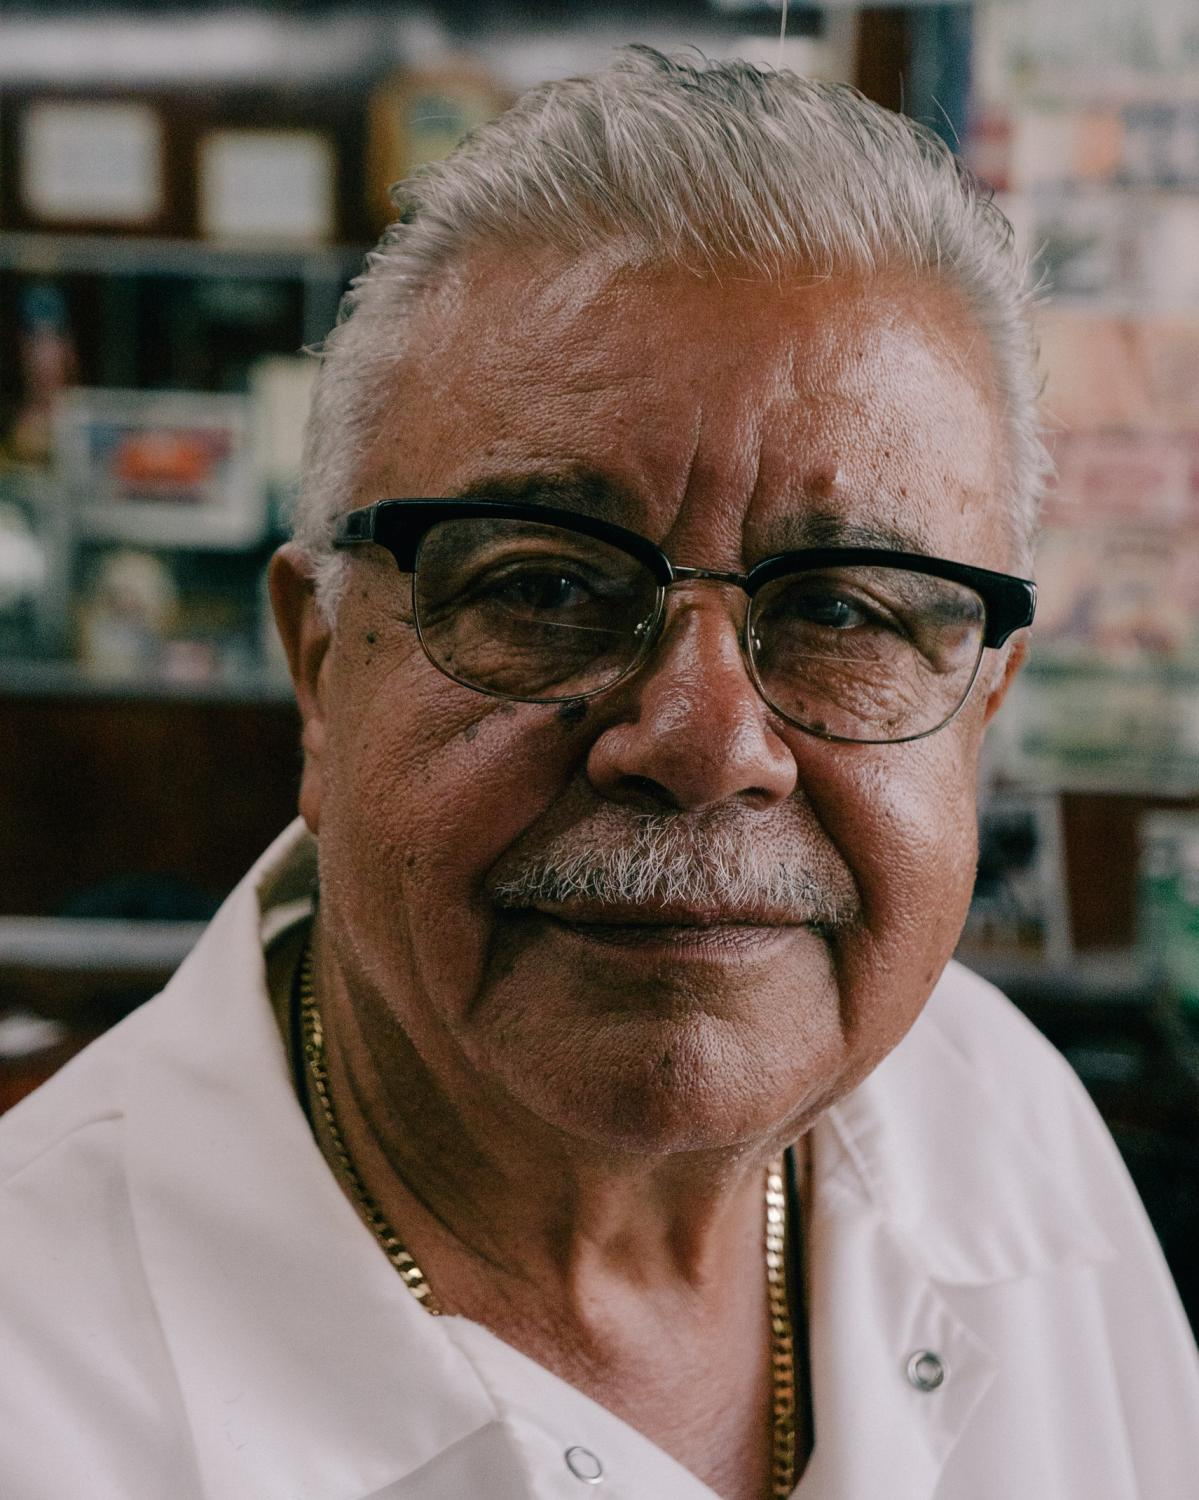 Eladio Burgos, 77, sits for a portrait as he waits for customers at his one seat barbershop on Suydam Avenue in the Brooklyn borough of New York City.